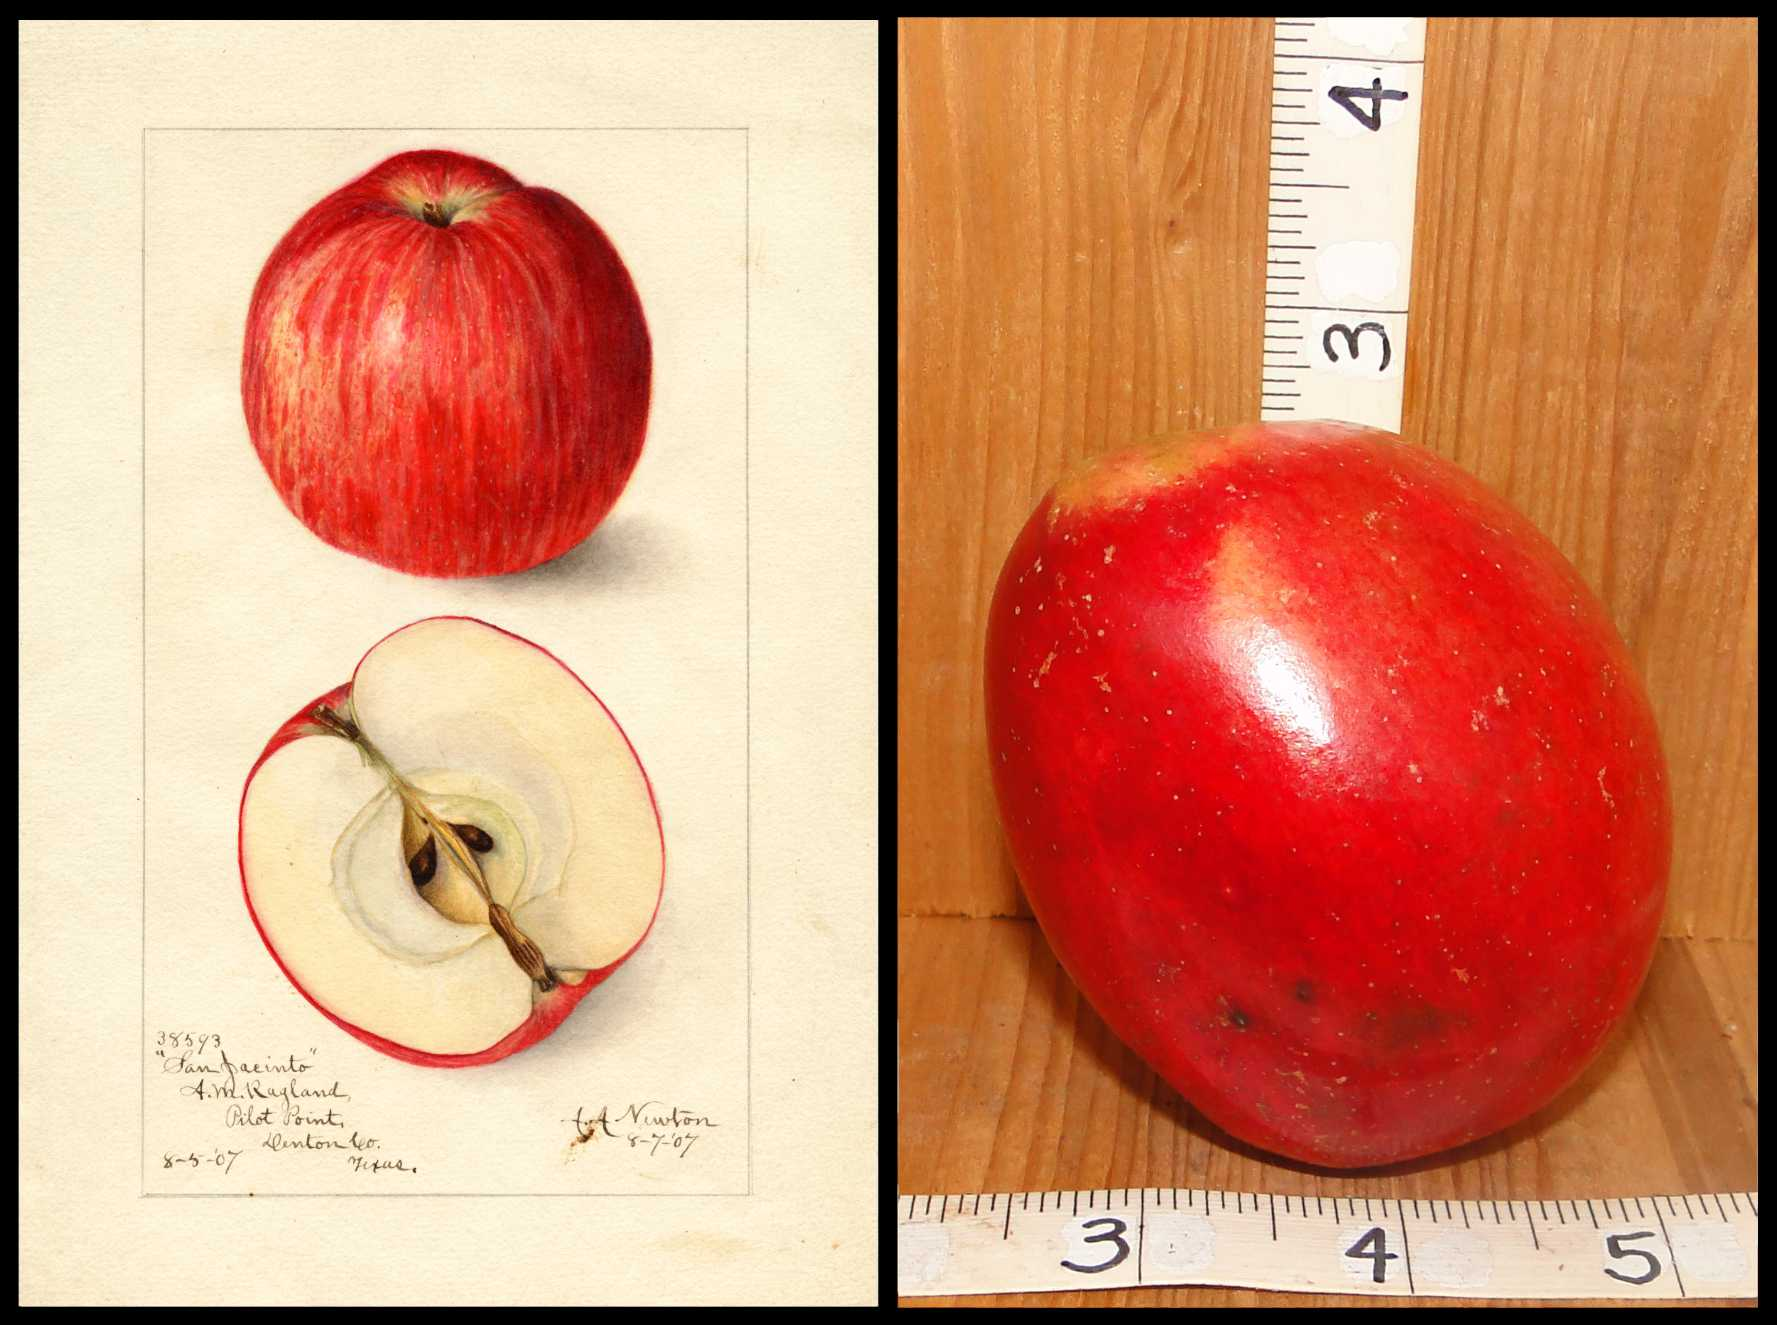 oval shaped shiny red apple